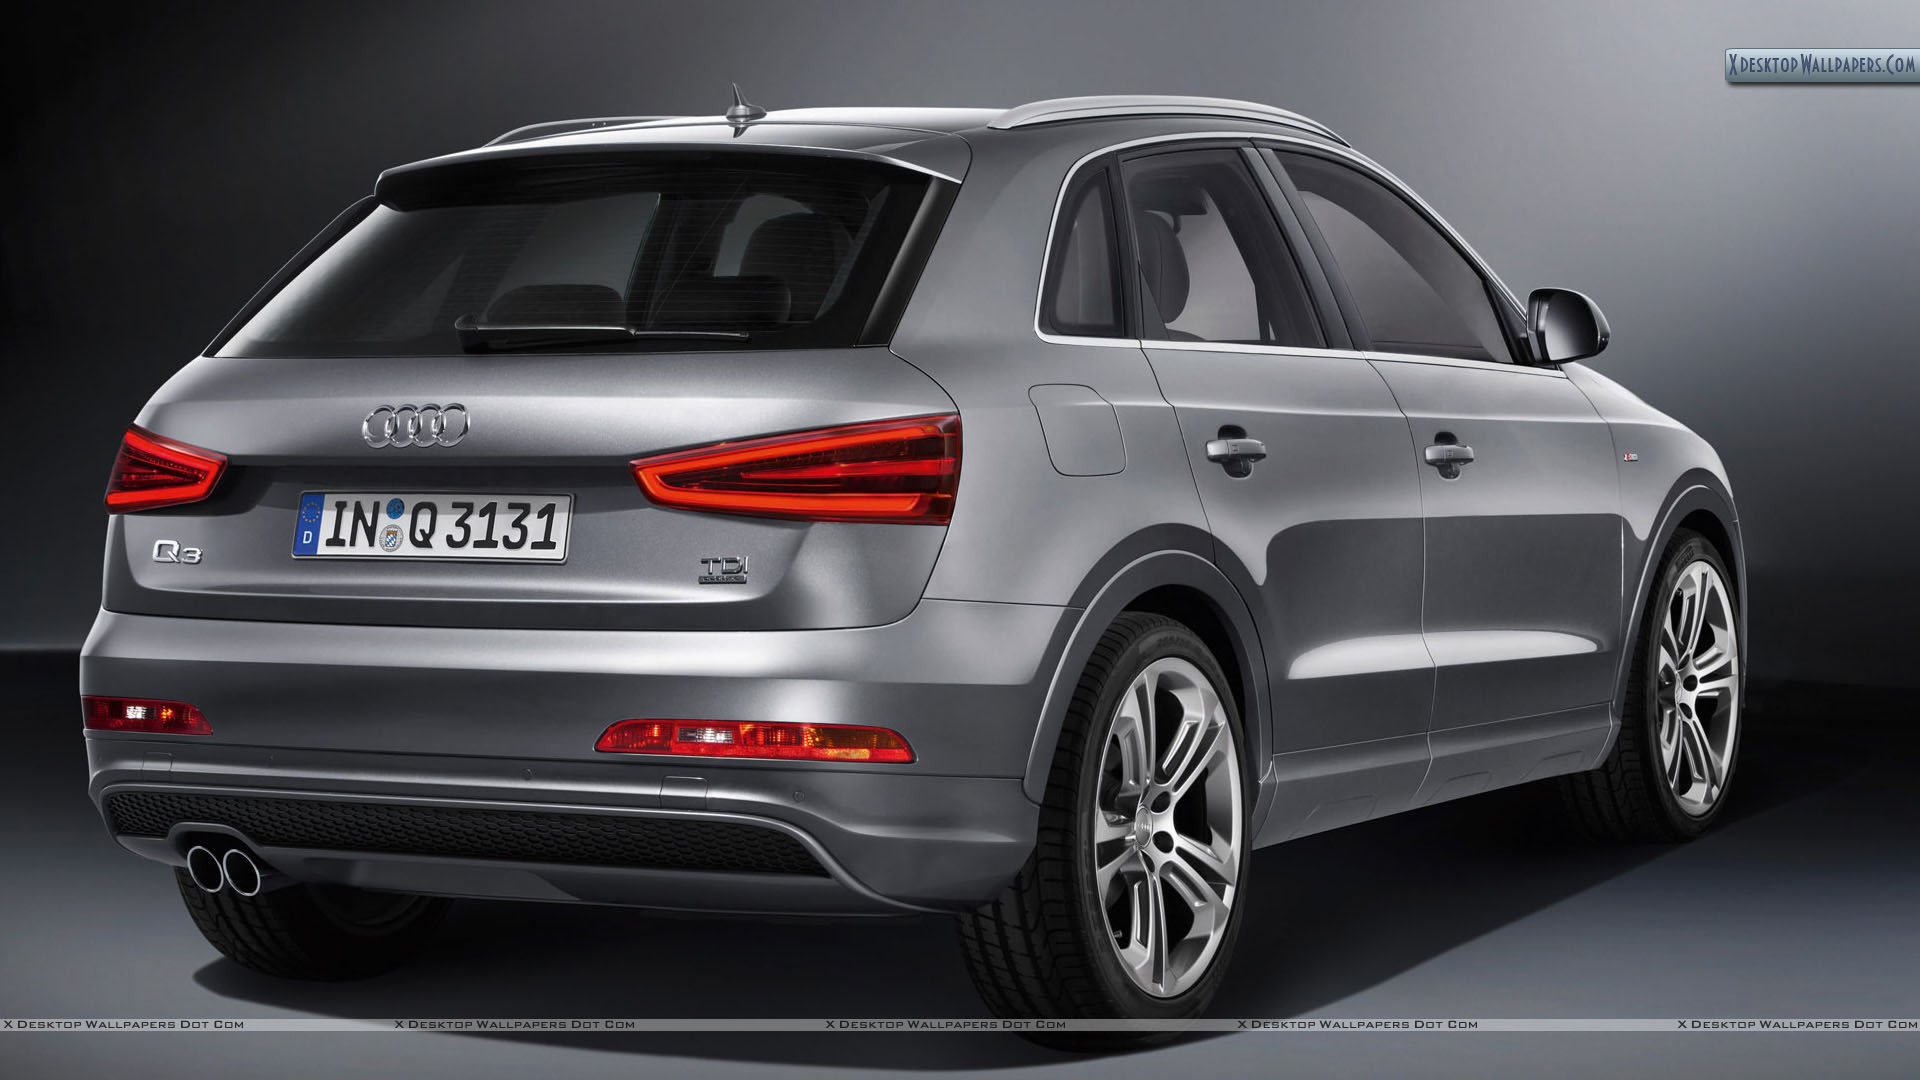 AUDI Q3 QUATTRO brown